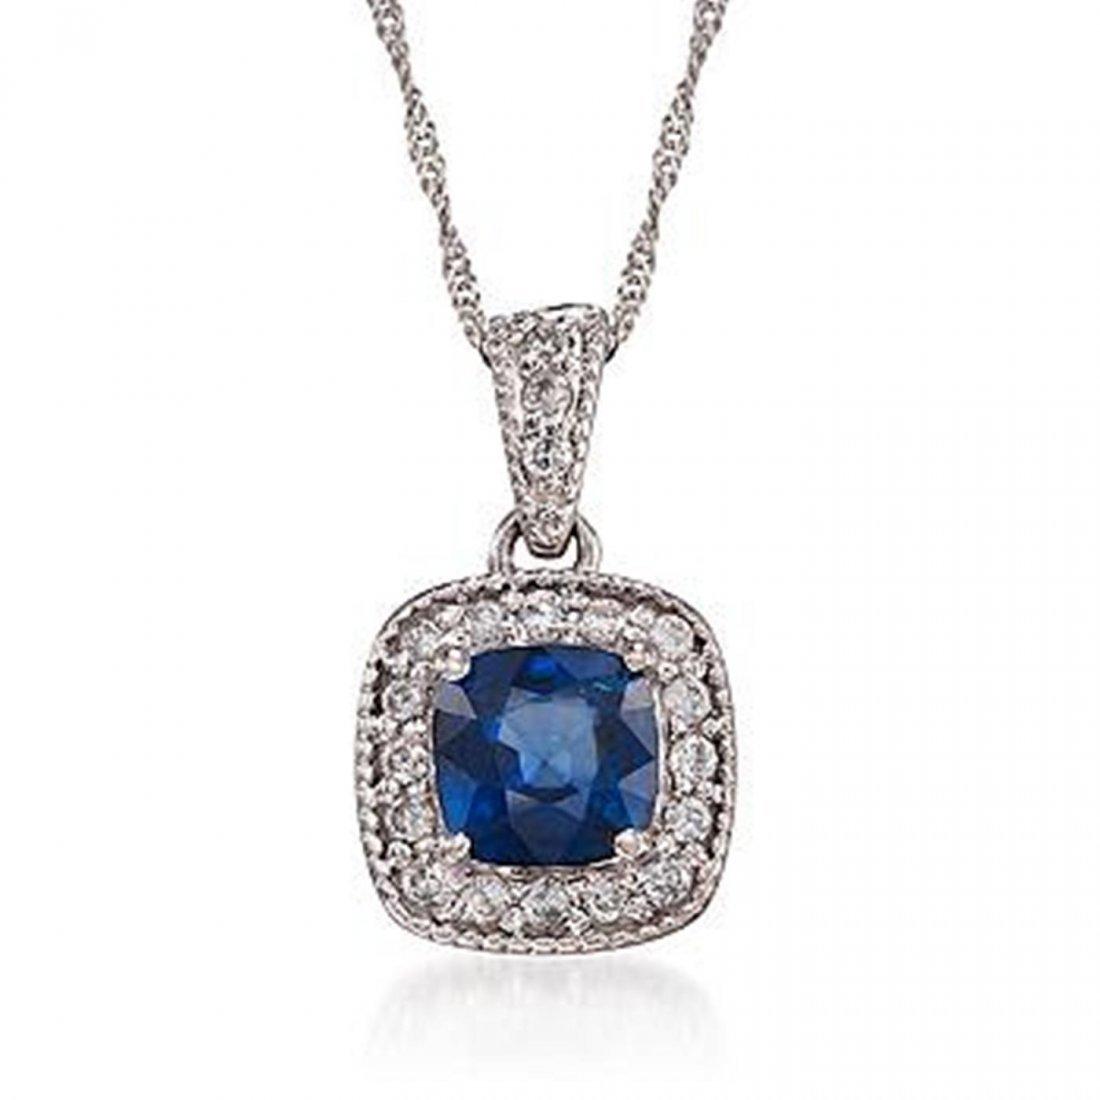 1.05 Carat Sapphire and Diamond Pendant Necklace in